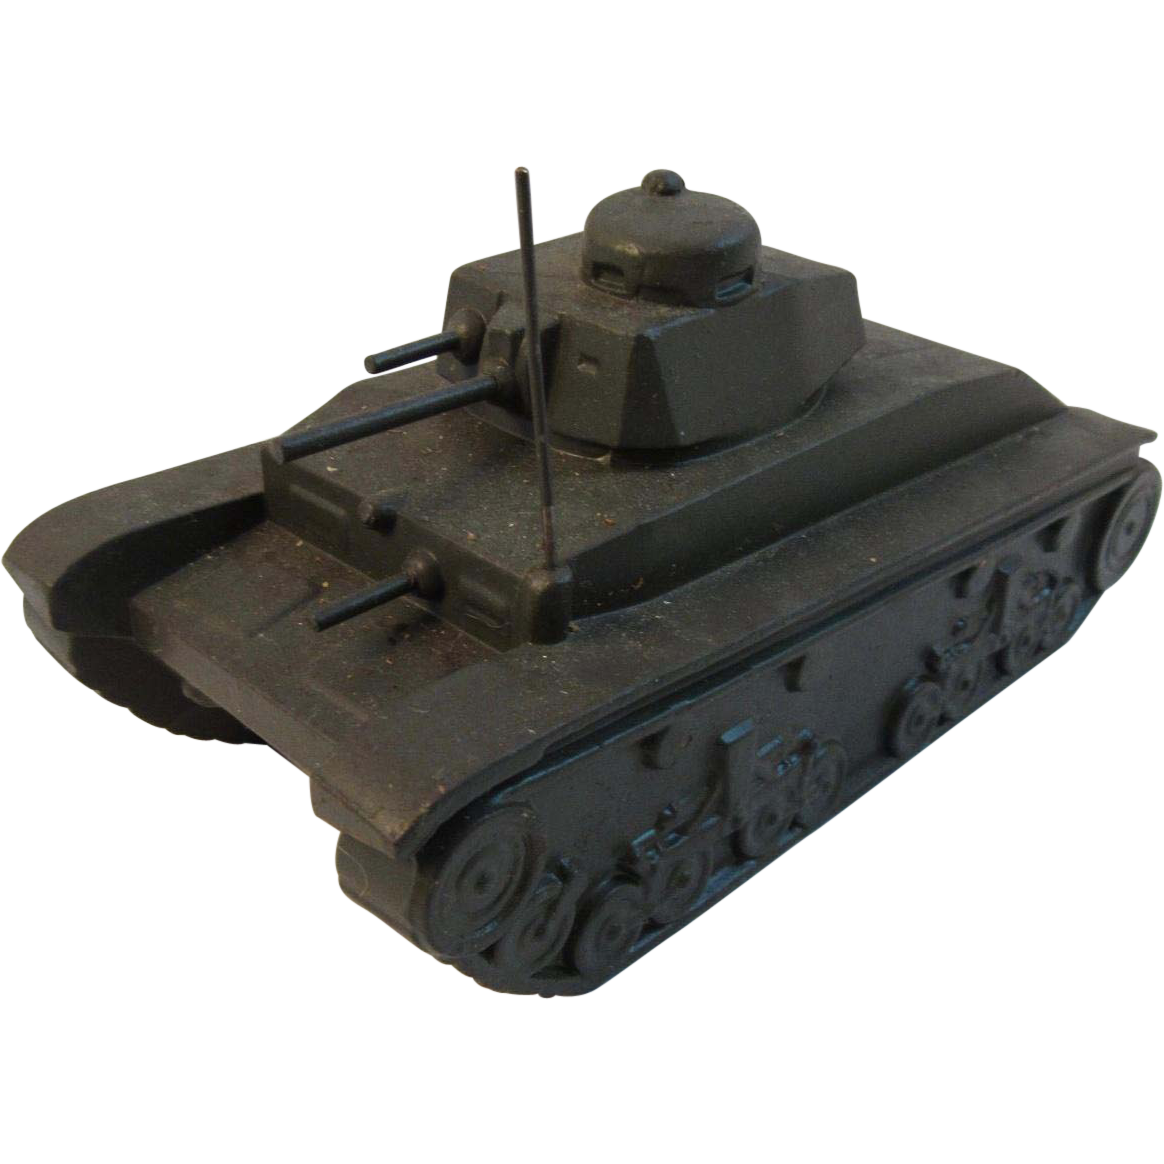 Framburg German T-35 Light Tank.